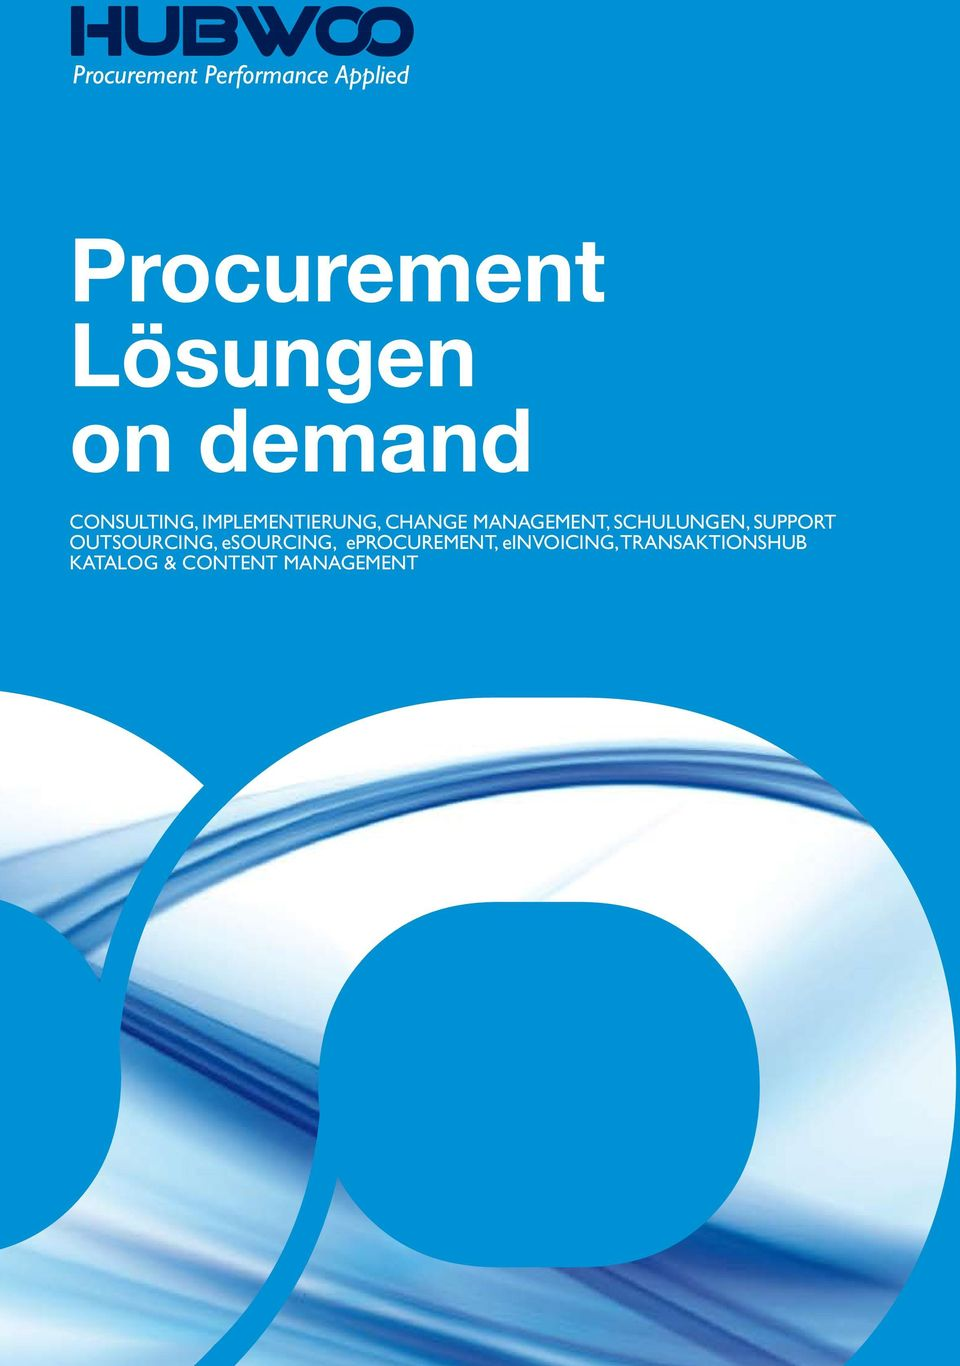 Support Outsourcing, esourcing, eprocurement,